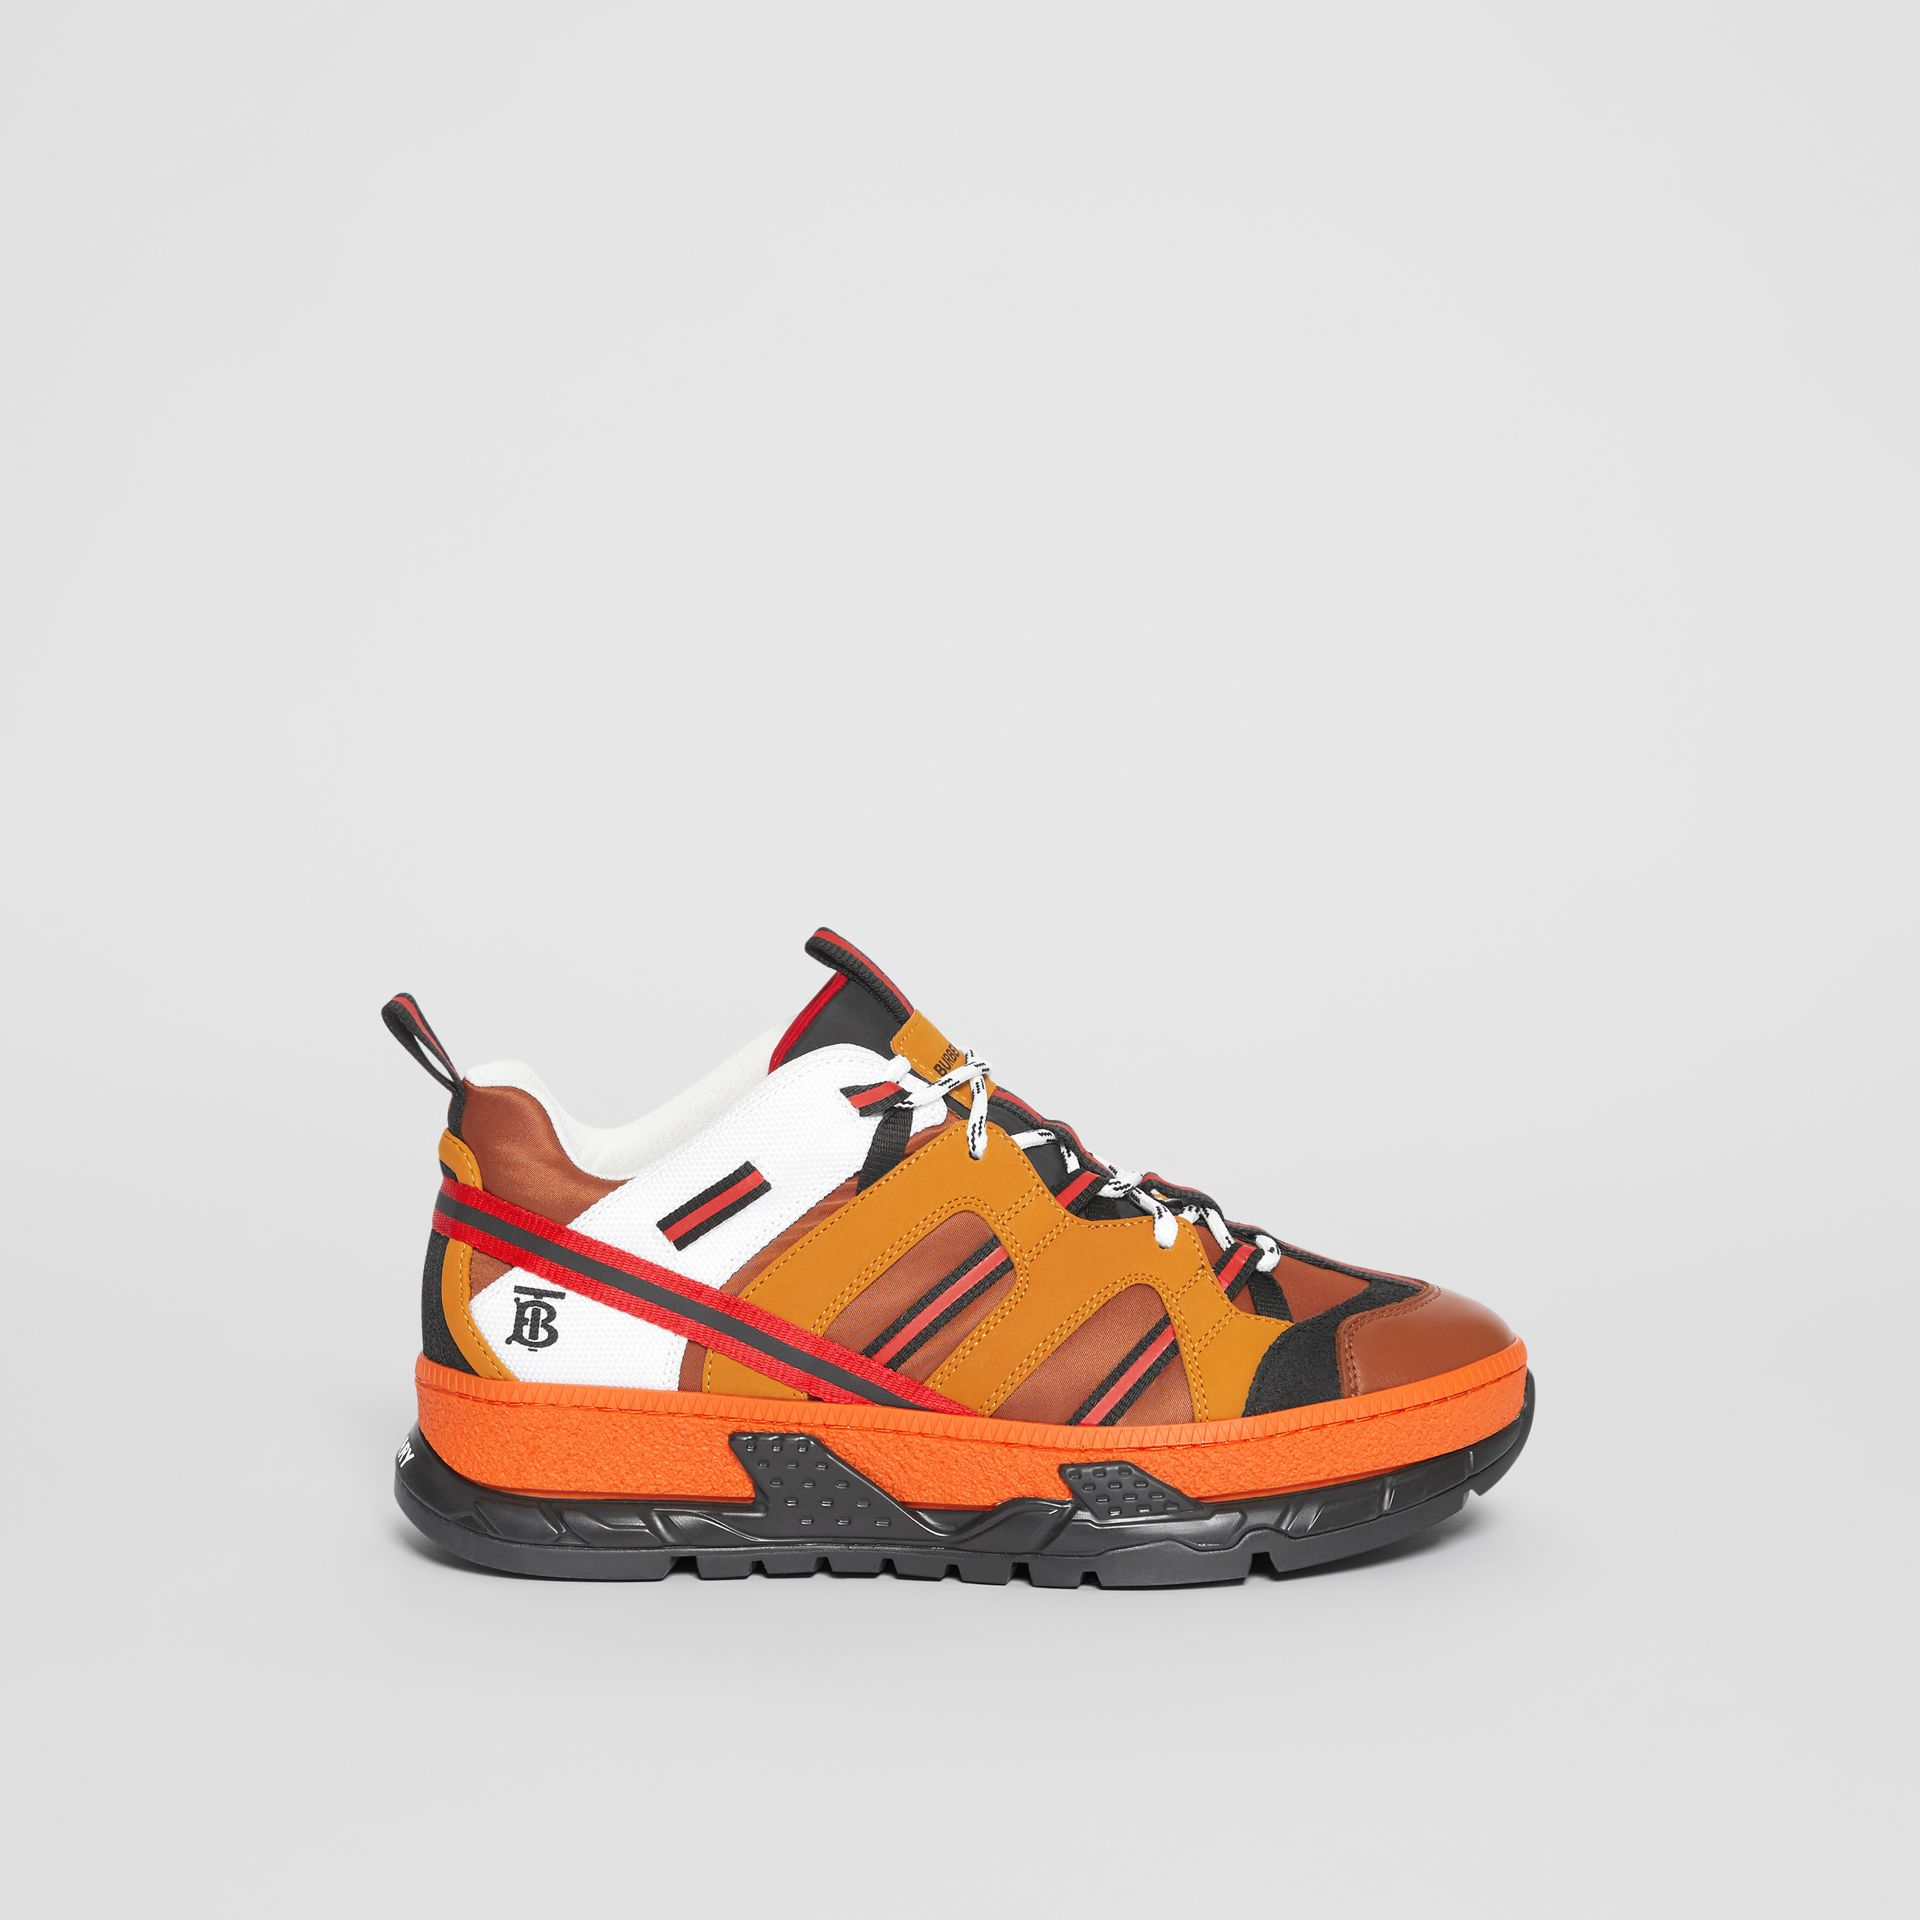 Nylon and Nubuck Union Sneakers in Orange - Men | Burberry - gallery image 5